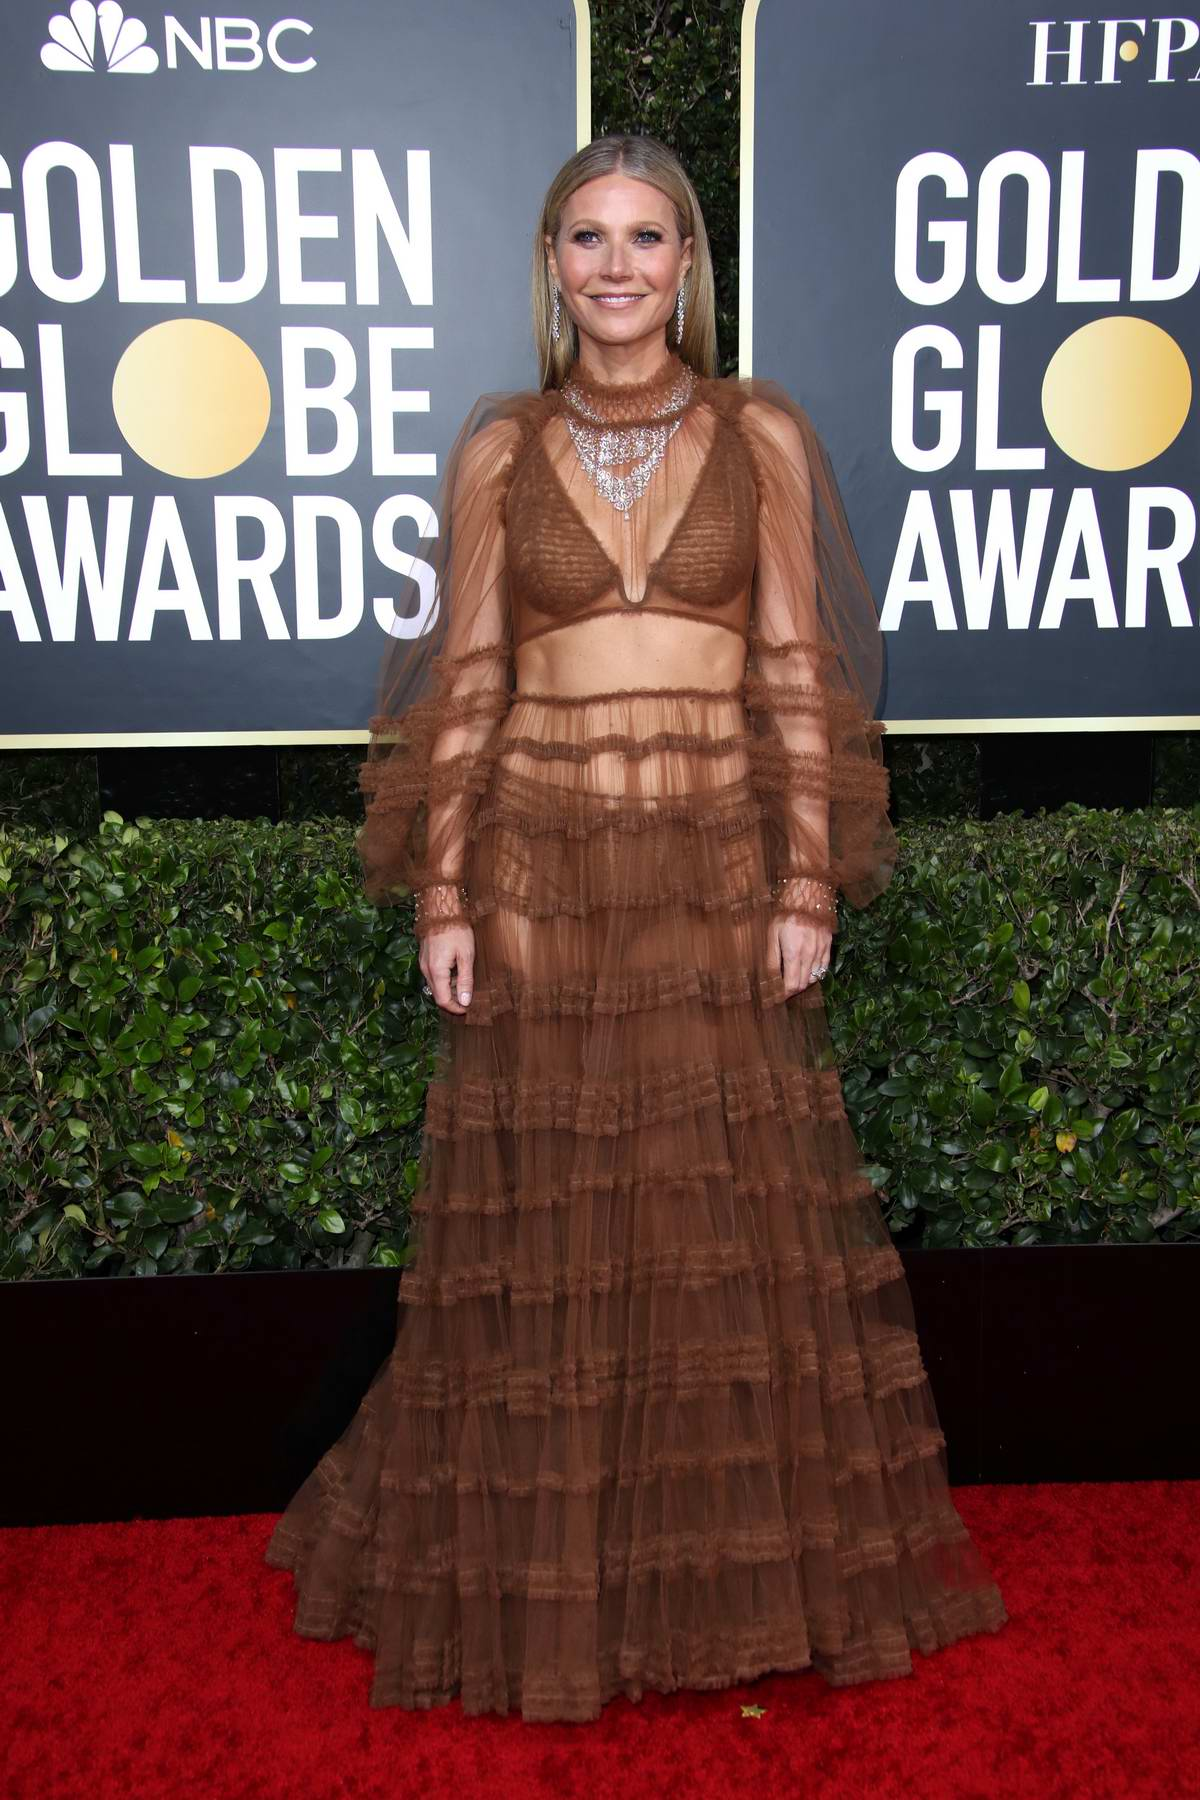 Gwyneth Paltrow attends the 77th Annual Golden Globe Awards at The Beverly Hilton Hotel in Beverly Hills, California